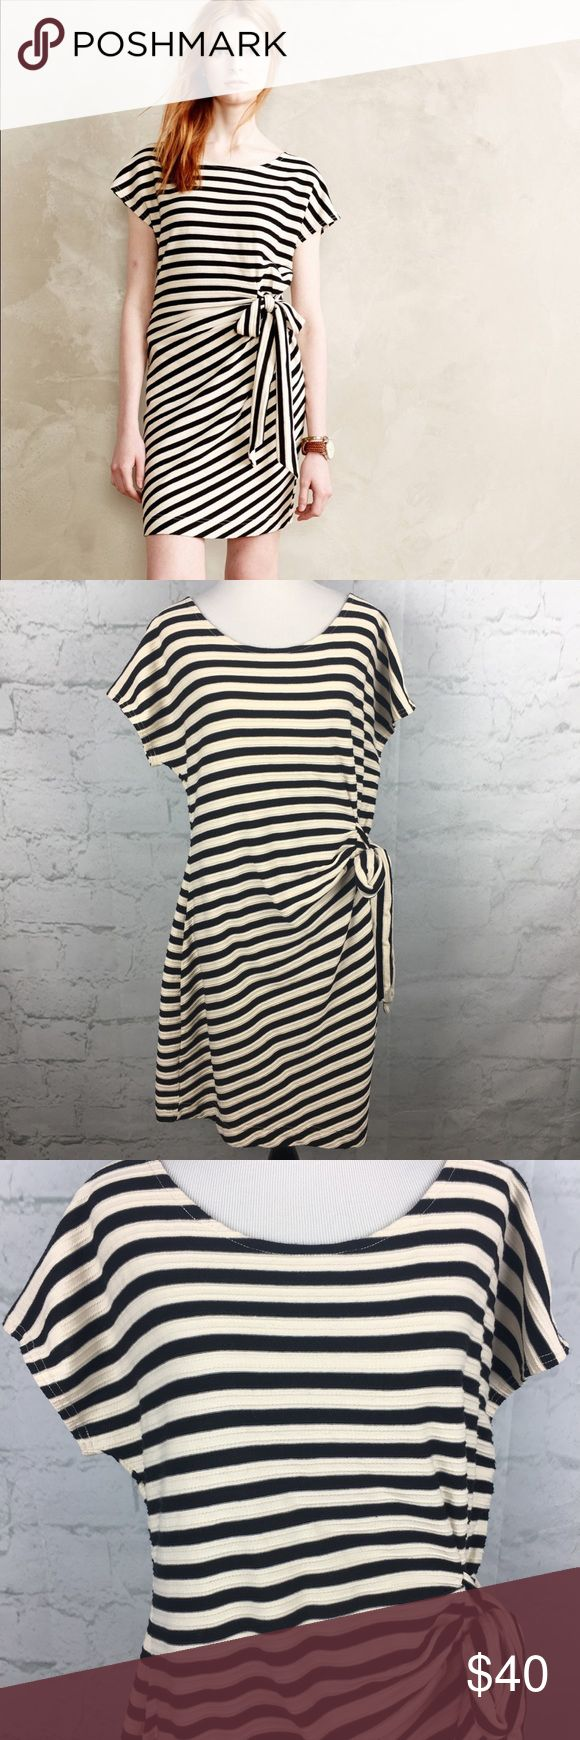 Anthropologie Saturday Sunday striped dress sz L Beautiful striped dress by Anthropologie Saturday Sunday. Side tie bow. Size Large. Excellent Condition Anthropologie Dresses